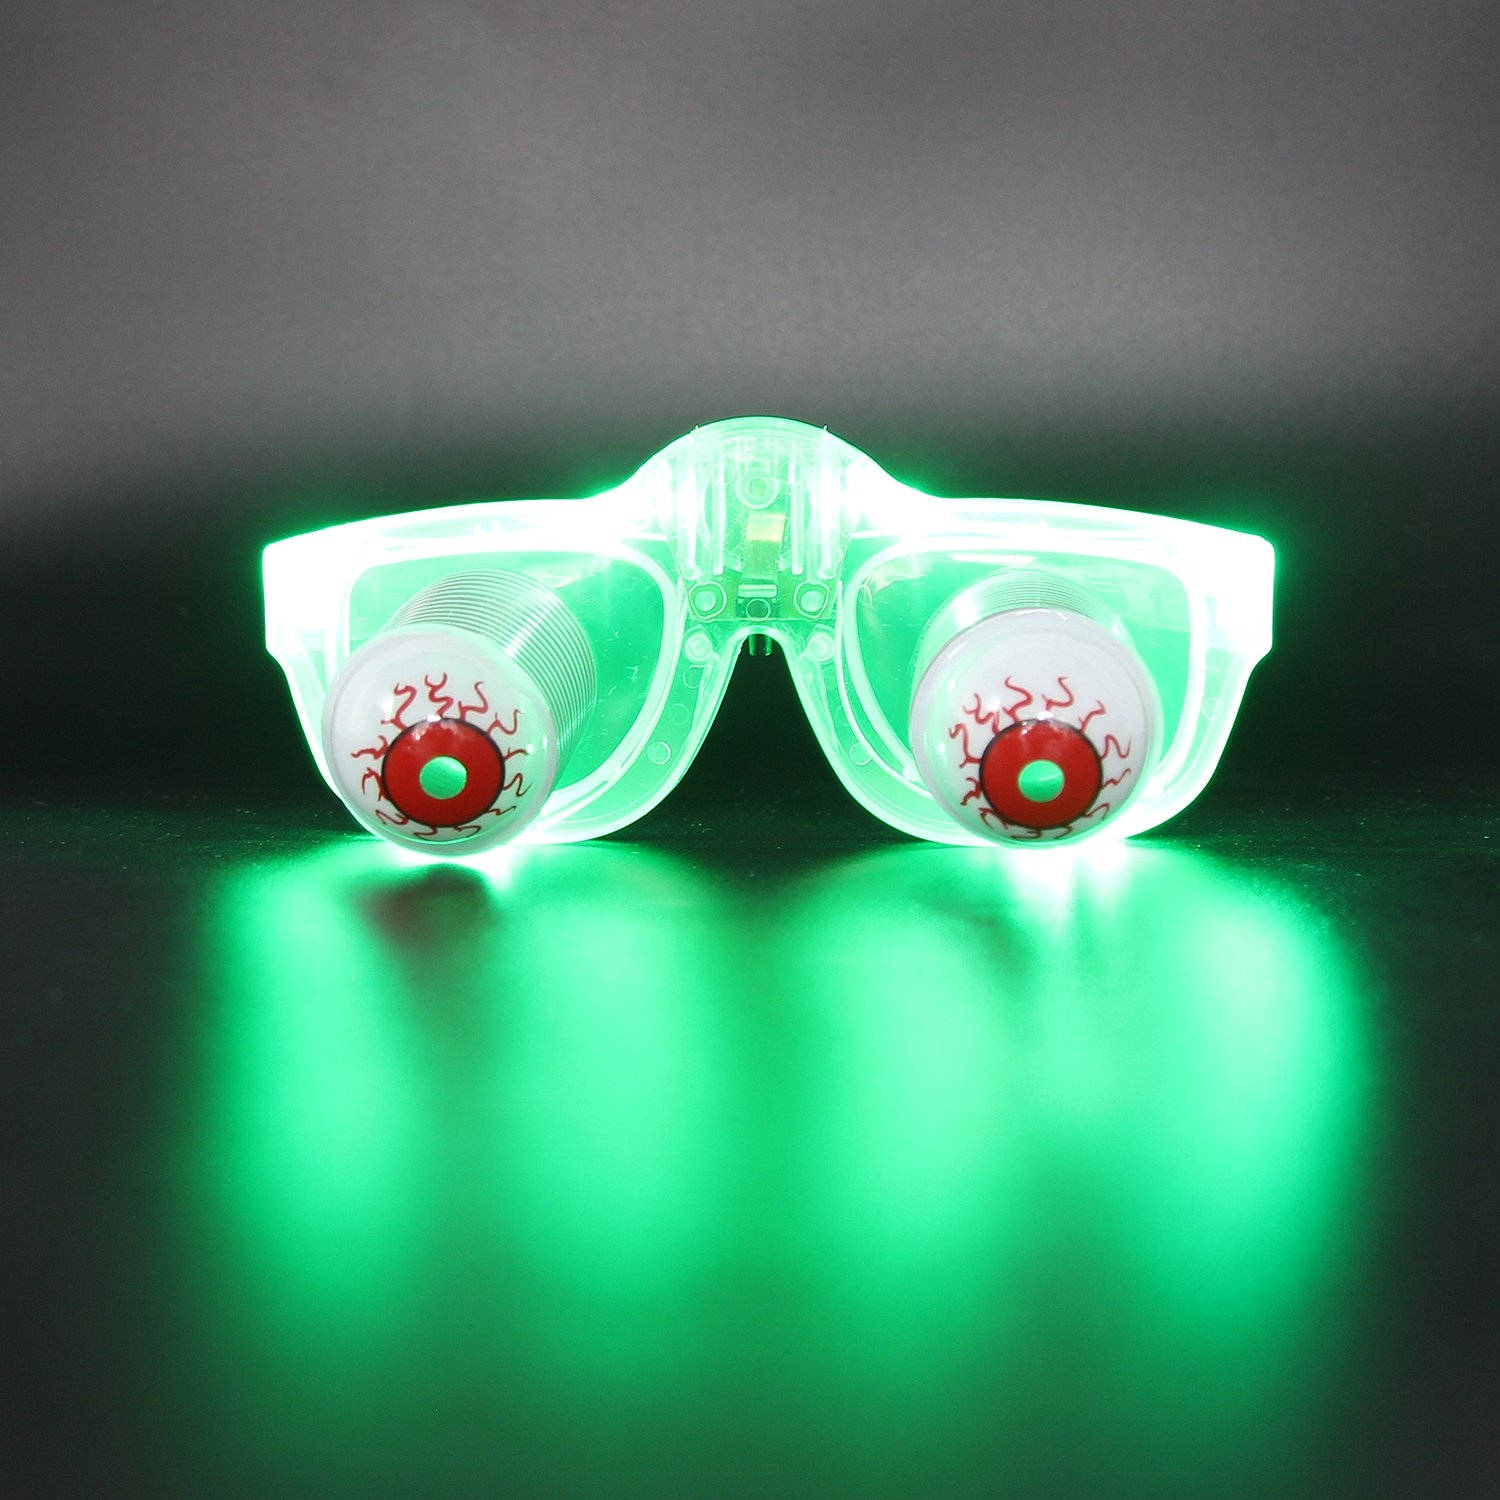 DA XIN Light Up Pop Out Eyes Glasses Droopy Eyes Glasses Goofy Slinky Pop Out Eye Gag Halloween Costume Party Joke Green fancyglow LED Brille